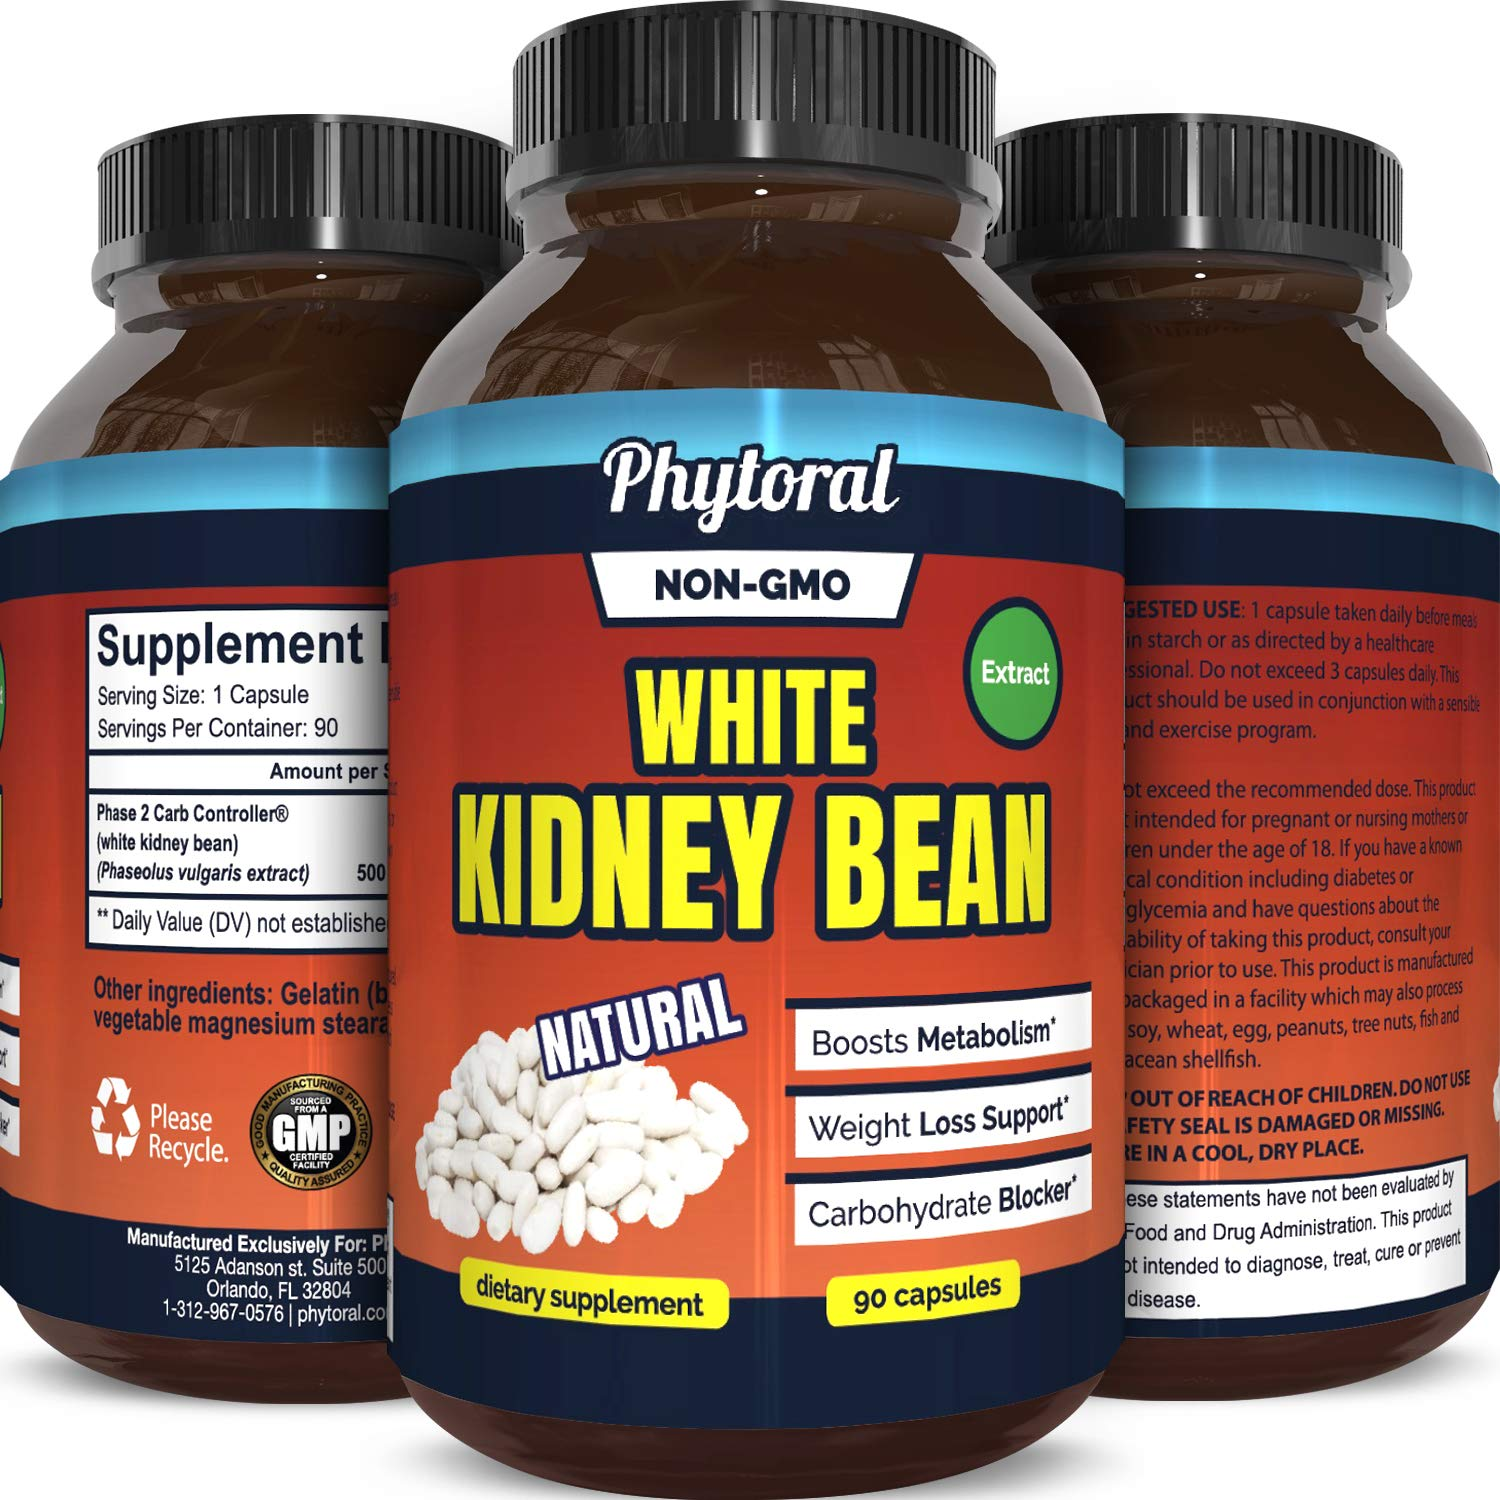 White Kidney Bean Supplement Pills Pure Extract Starch Carb Blocker Weight Loss Formula - Lose Belly Fat Suppress Appetite Boost Metabolism Natural Weight Loss for Men and Women